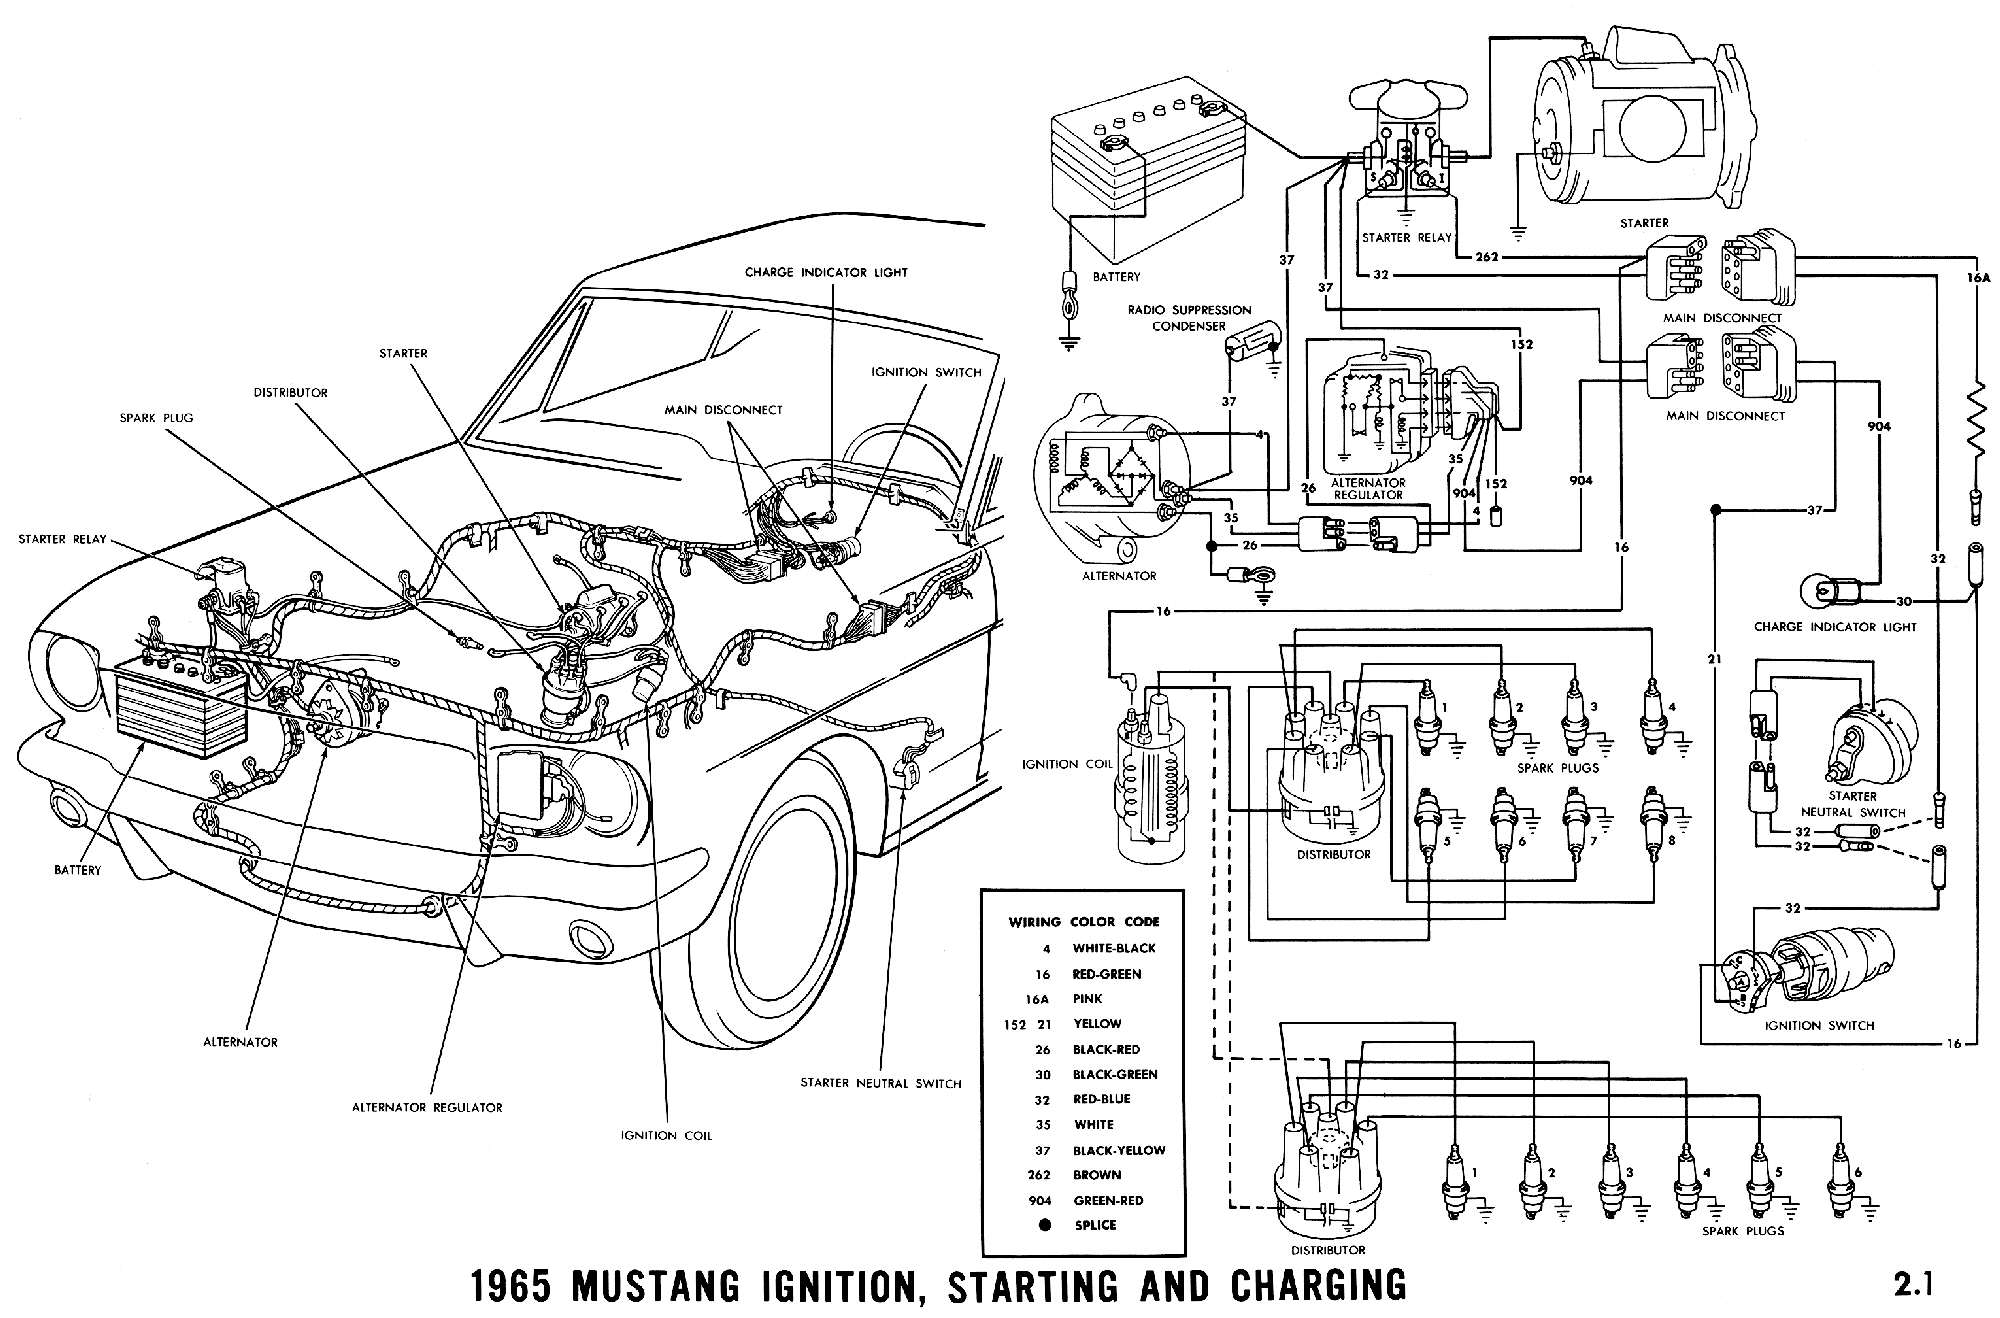 1965c 1965 mustang wiring diagrams average joe restoration 1965 mustang alternator wiring diagram at bakdesigns.co